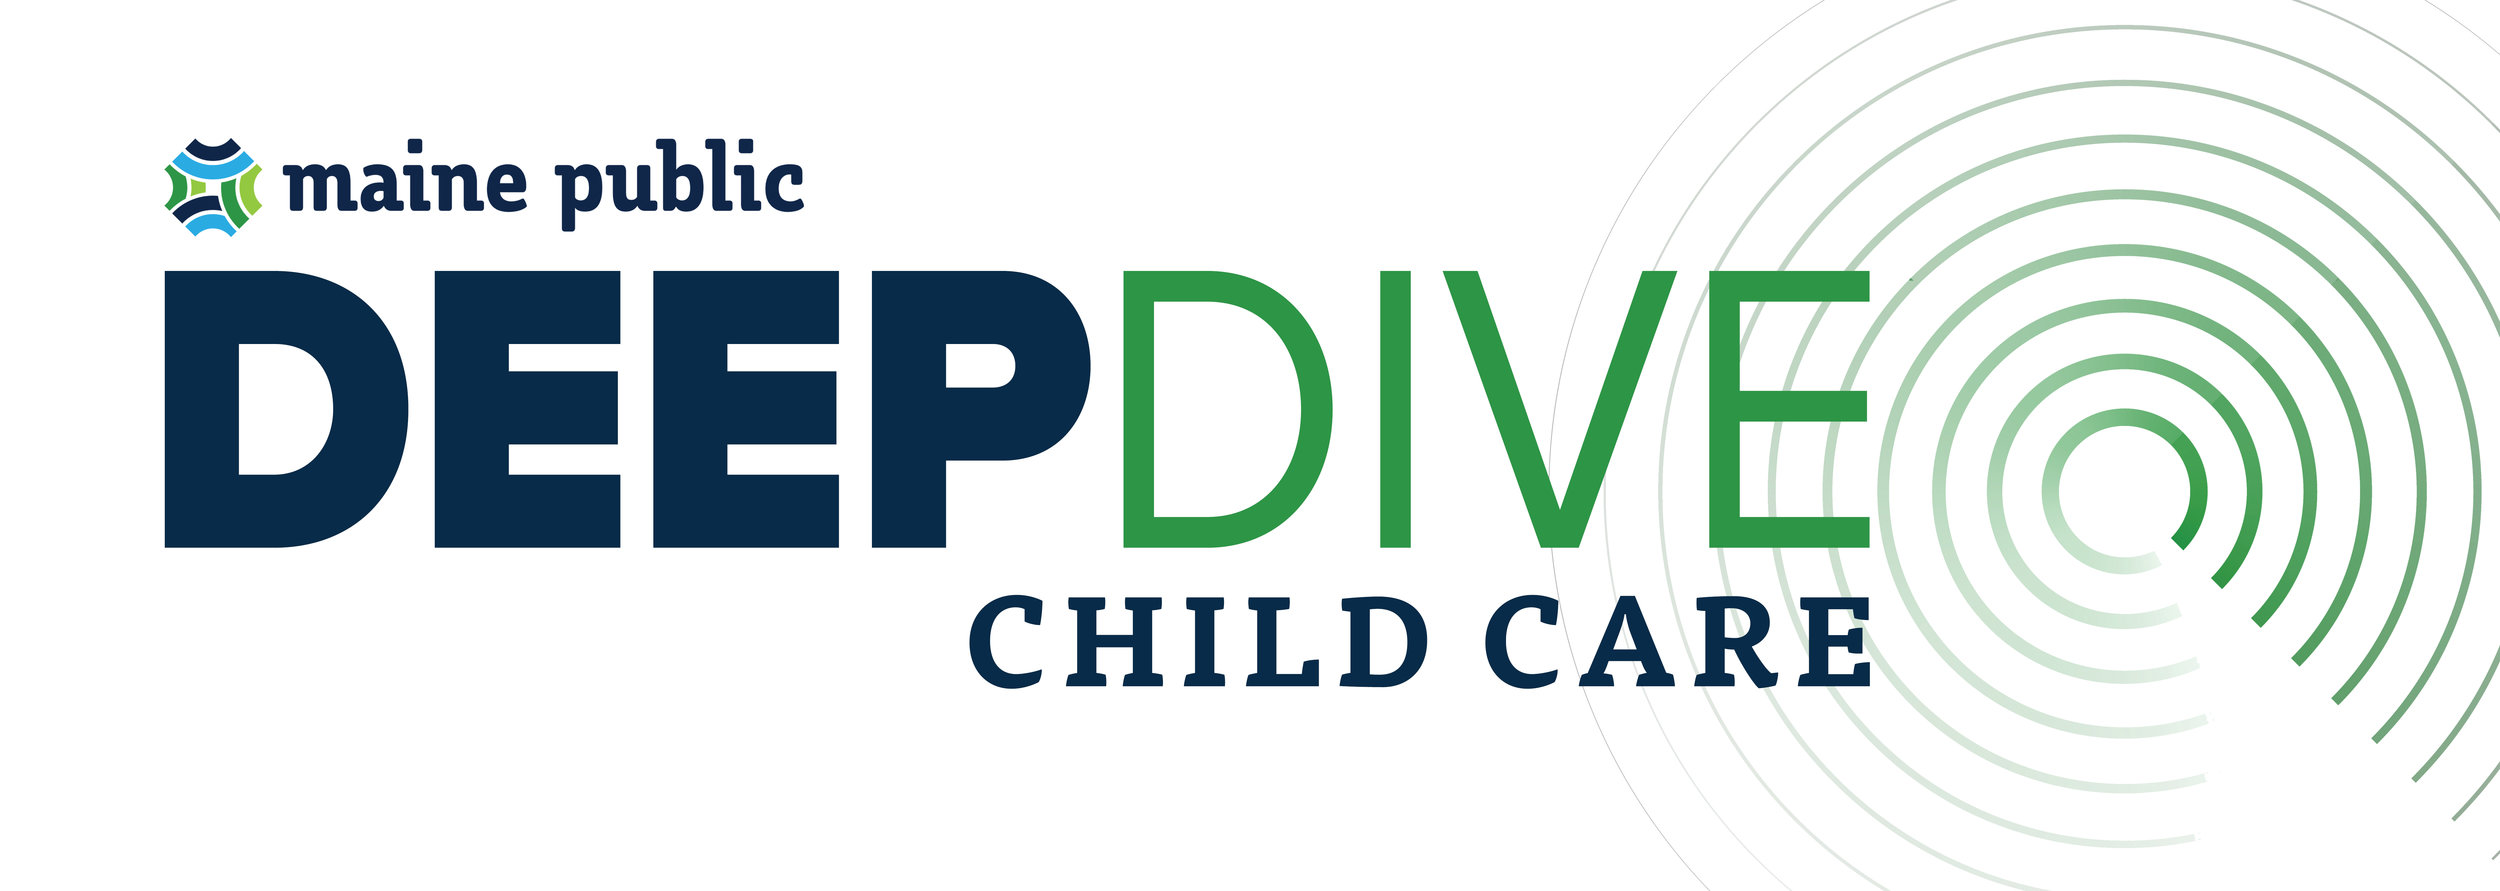 Deep Dive child care 01.jpg